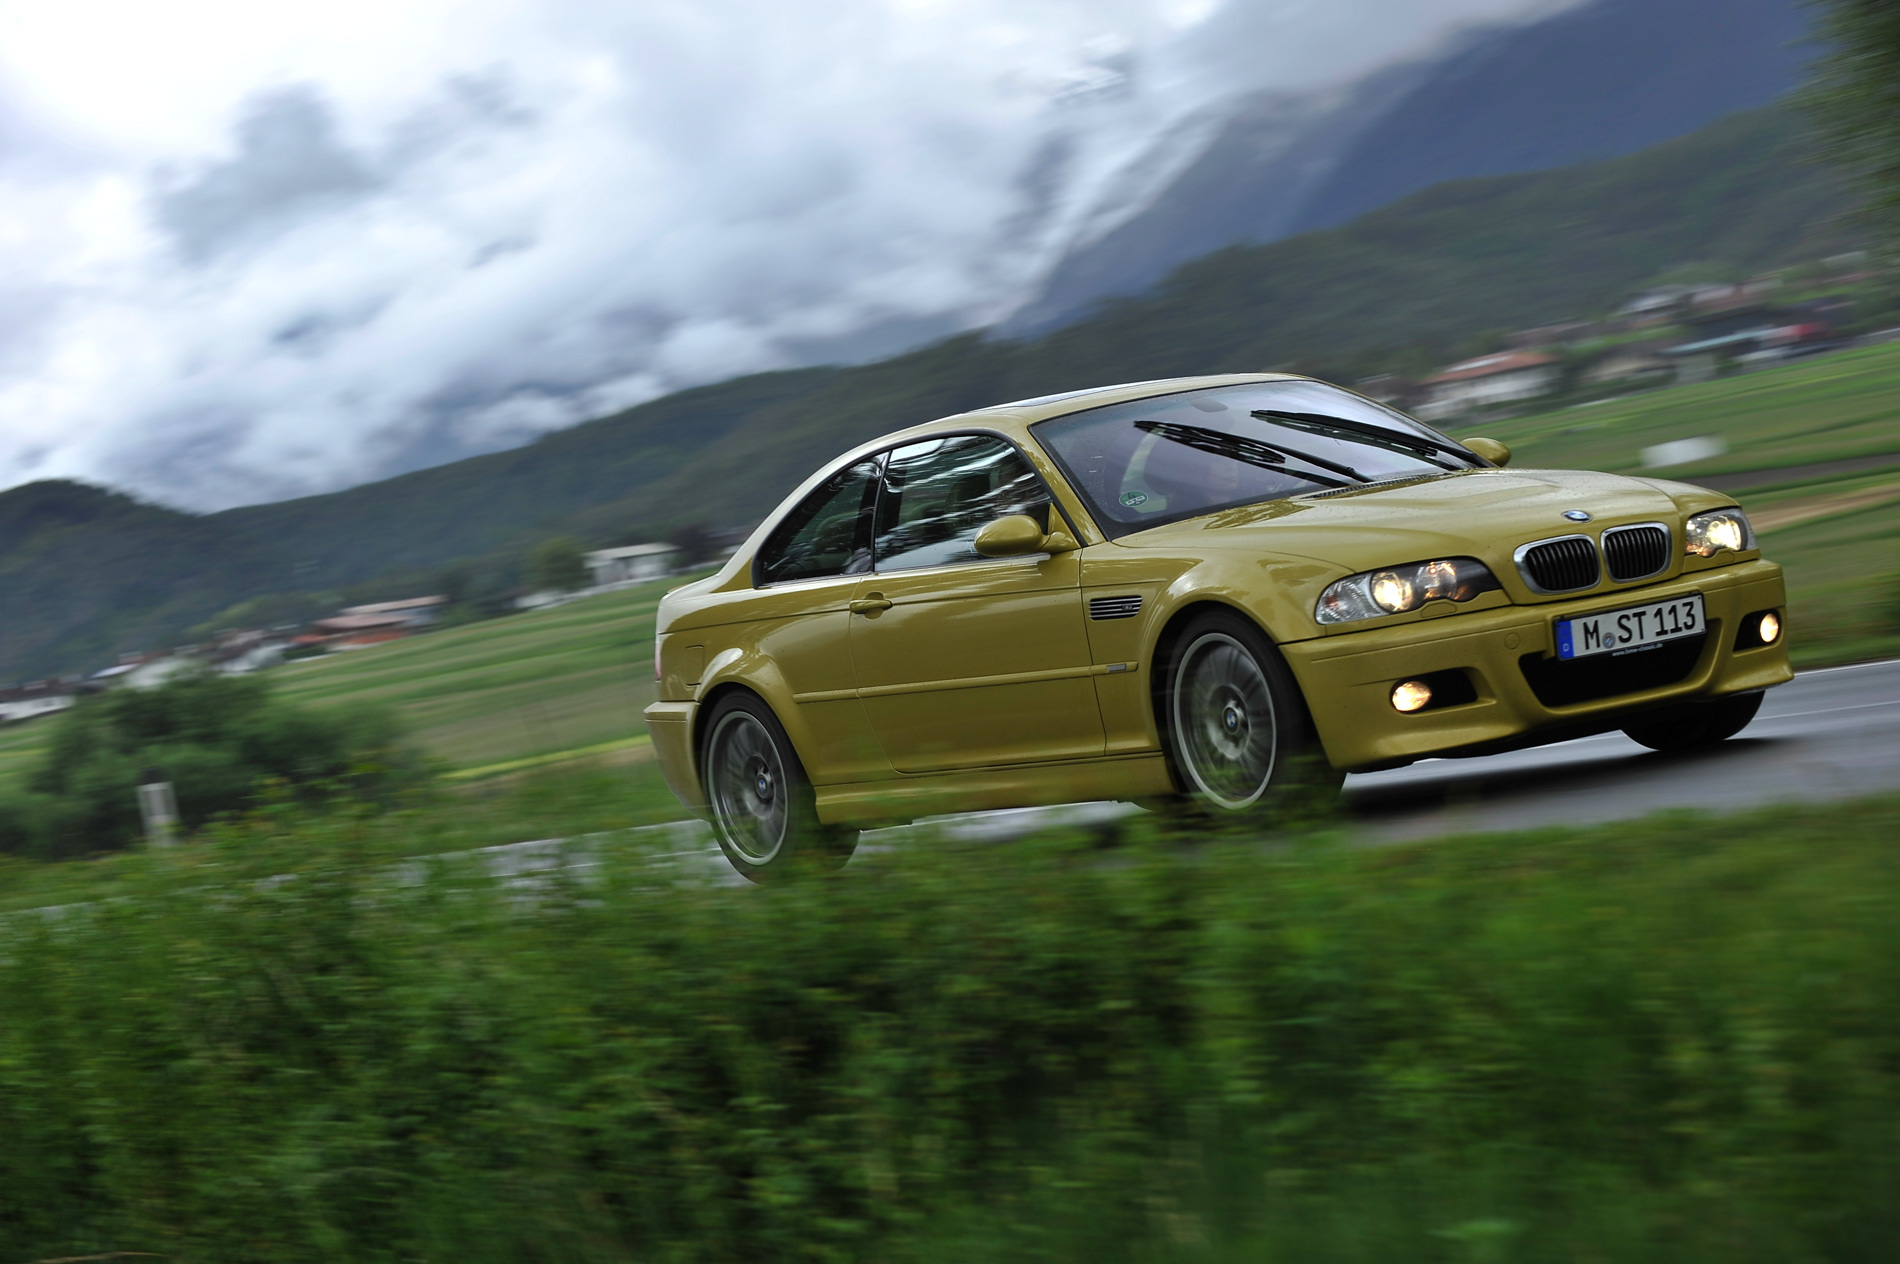 Photoshoot With The Beautiful Bmw E46 M3 Phoenix Yellow